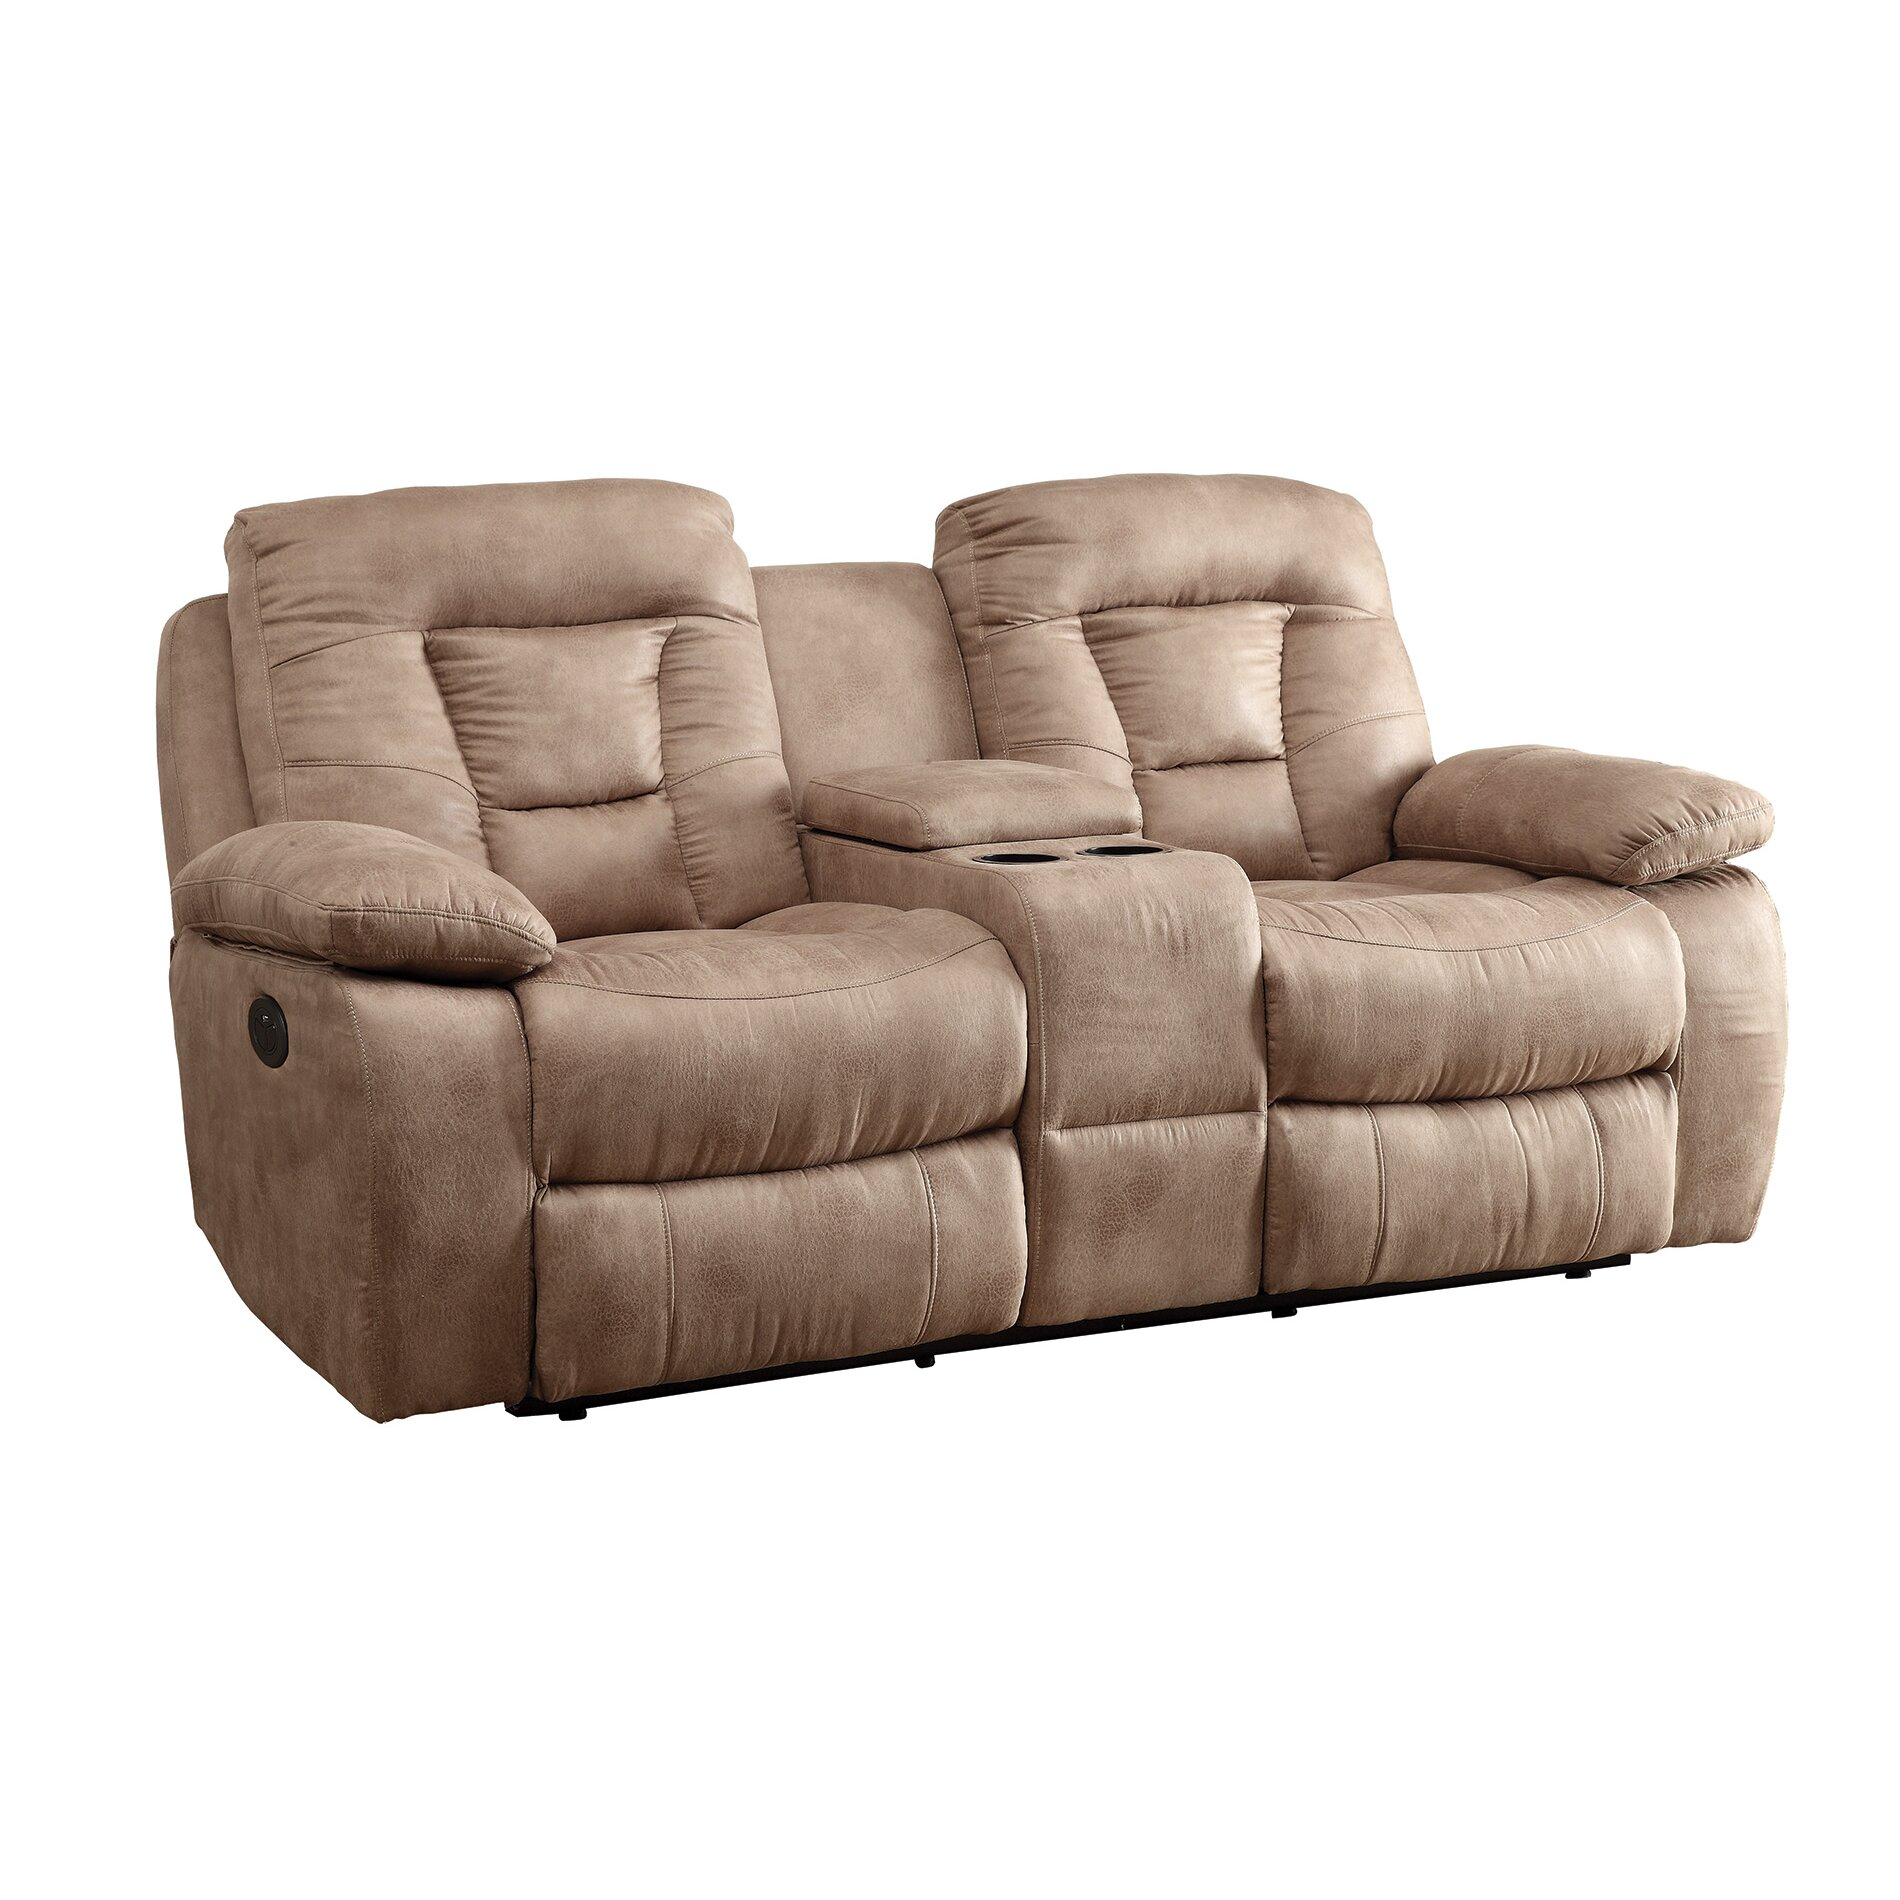 Wildon Home Motion Reclining Loveseat